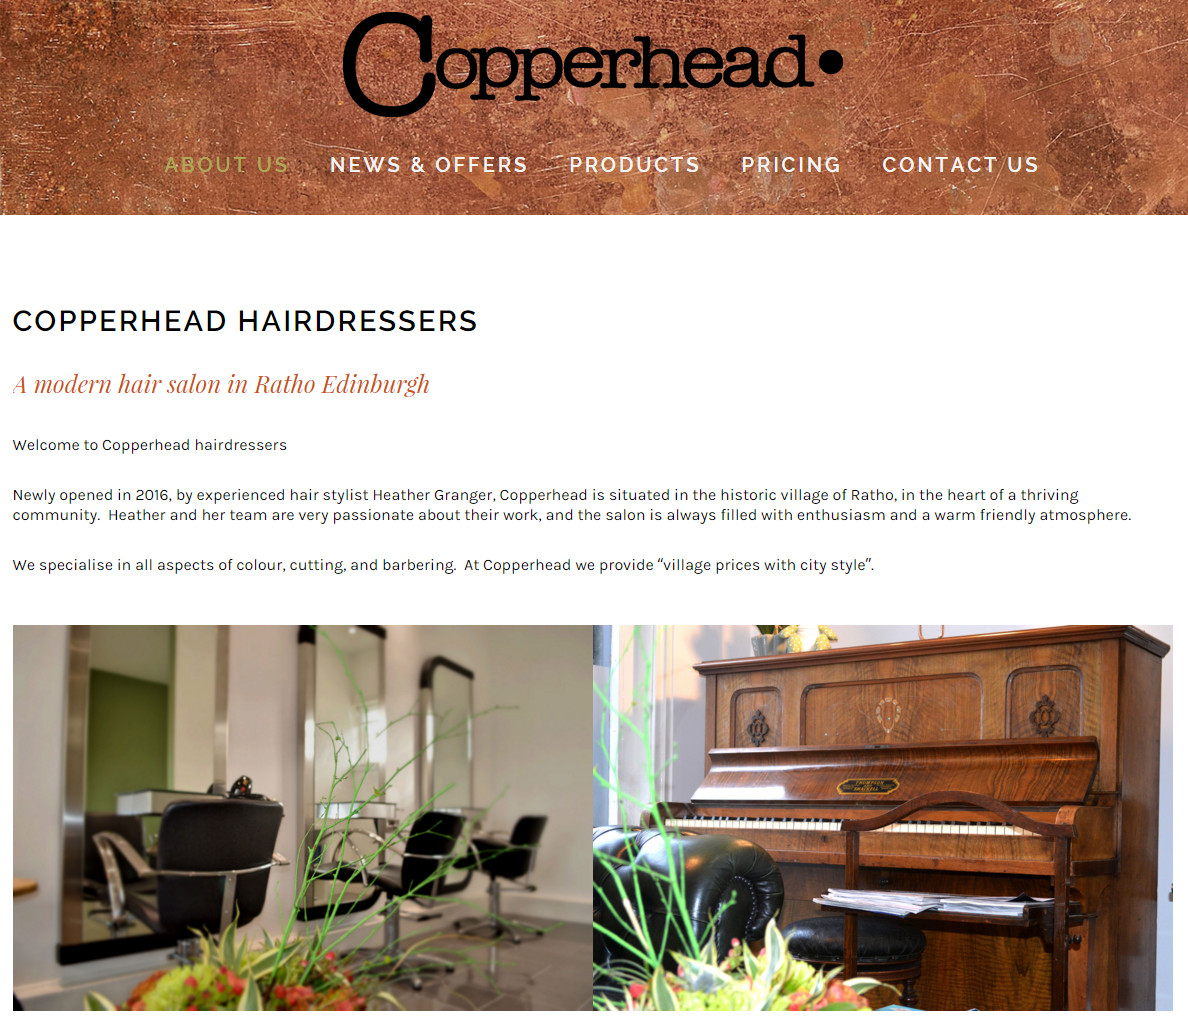 copperhead-about-us-page